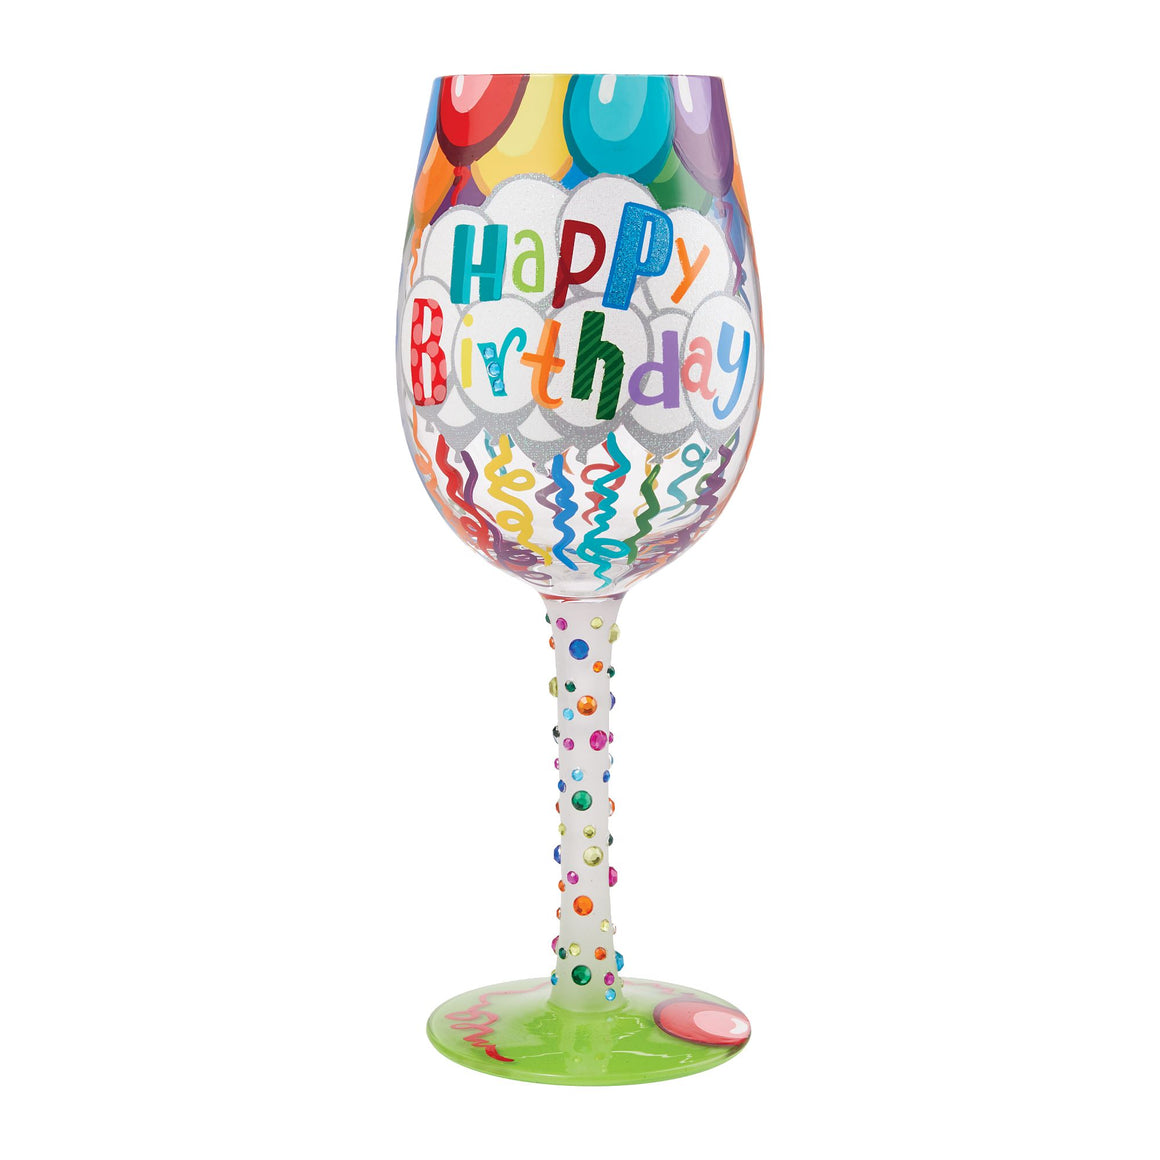 Birthday Streamers Wine Glass by Lolita